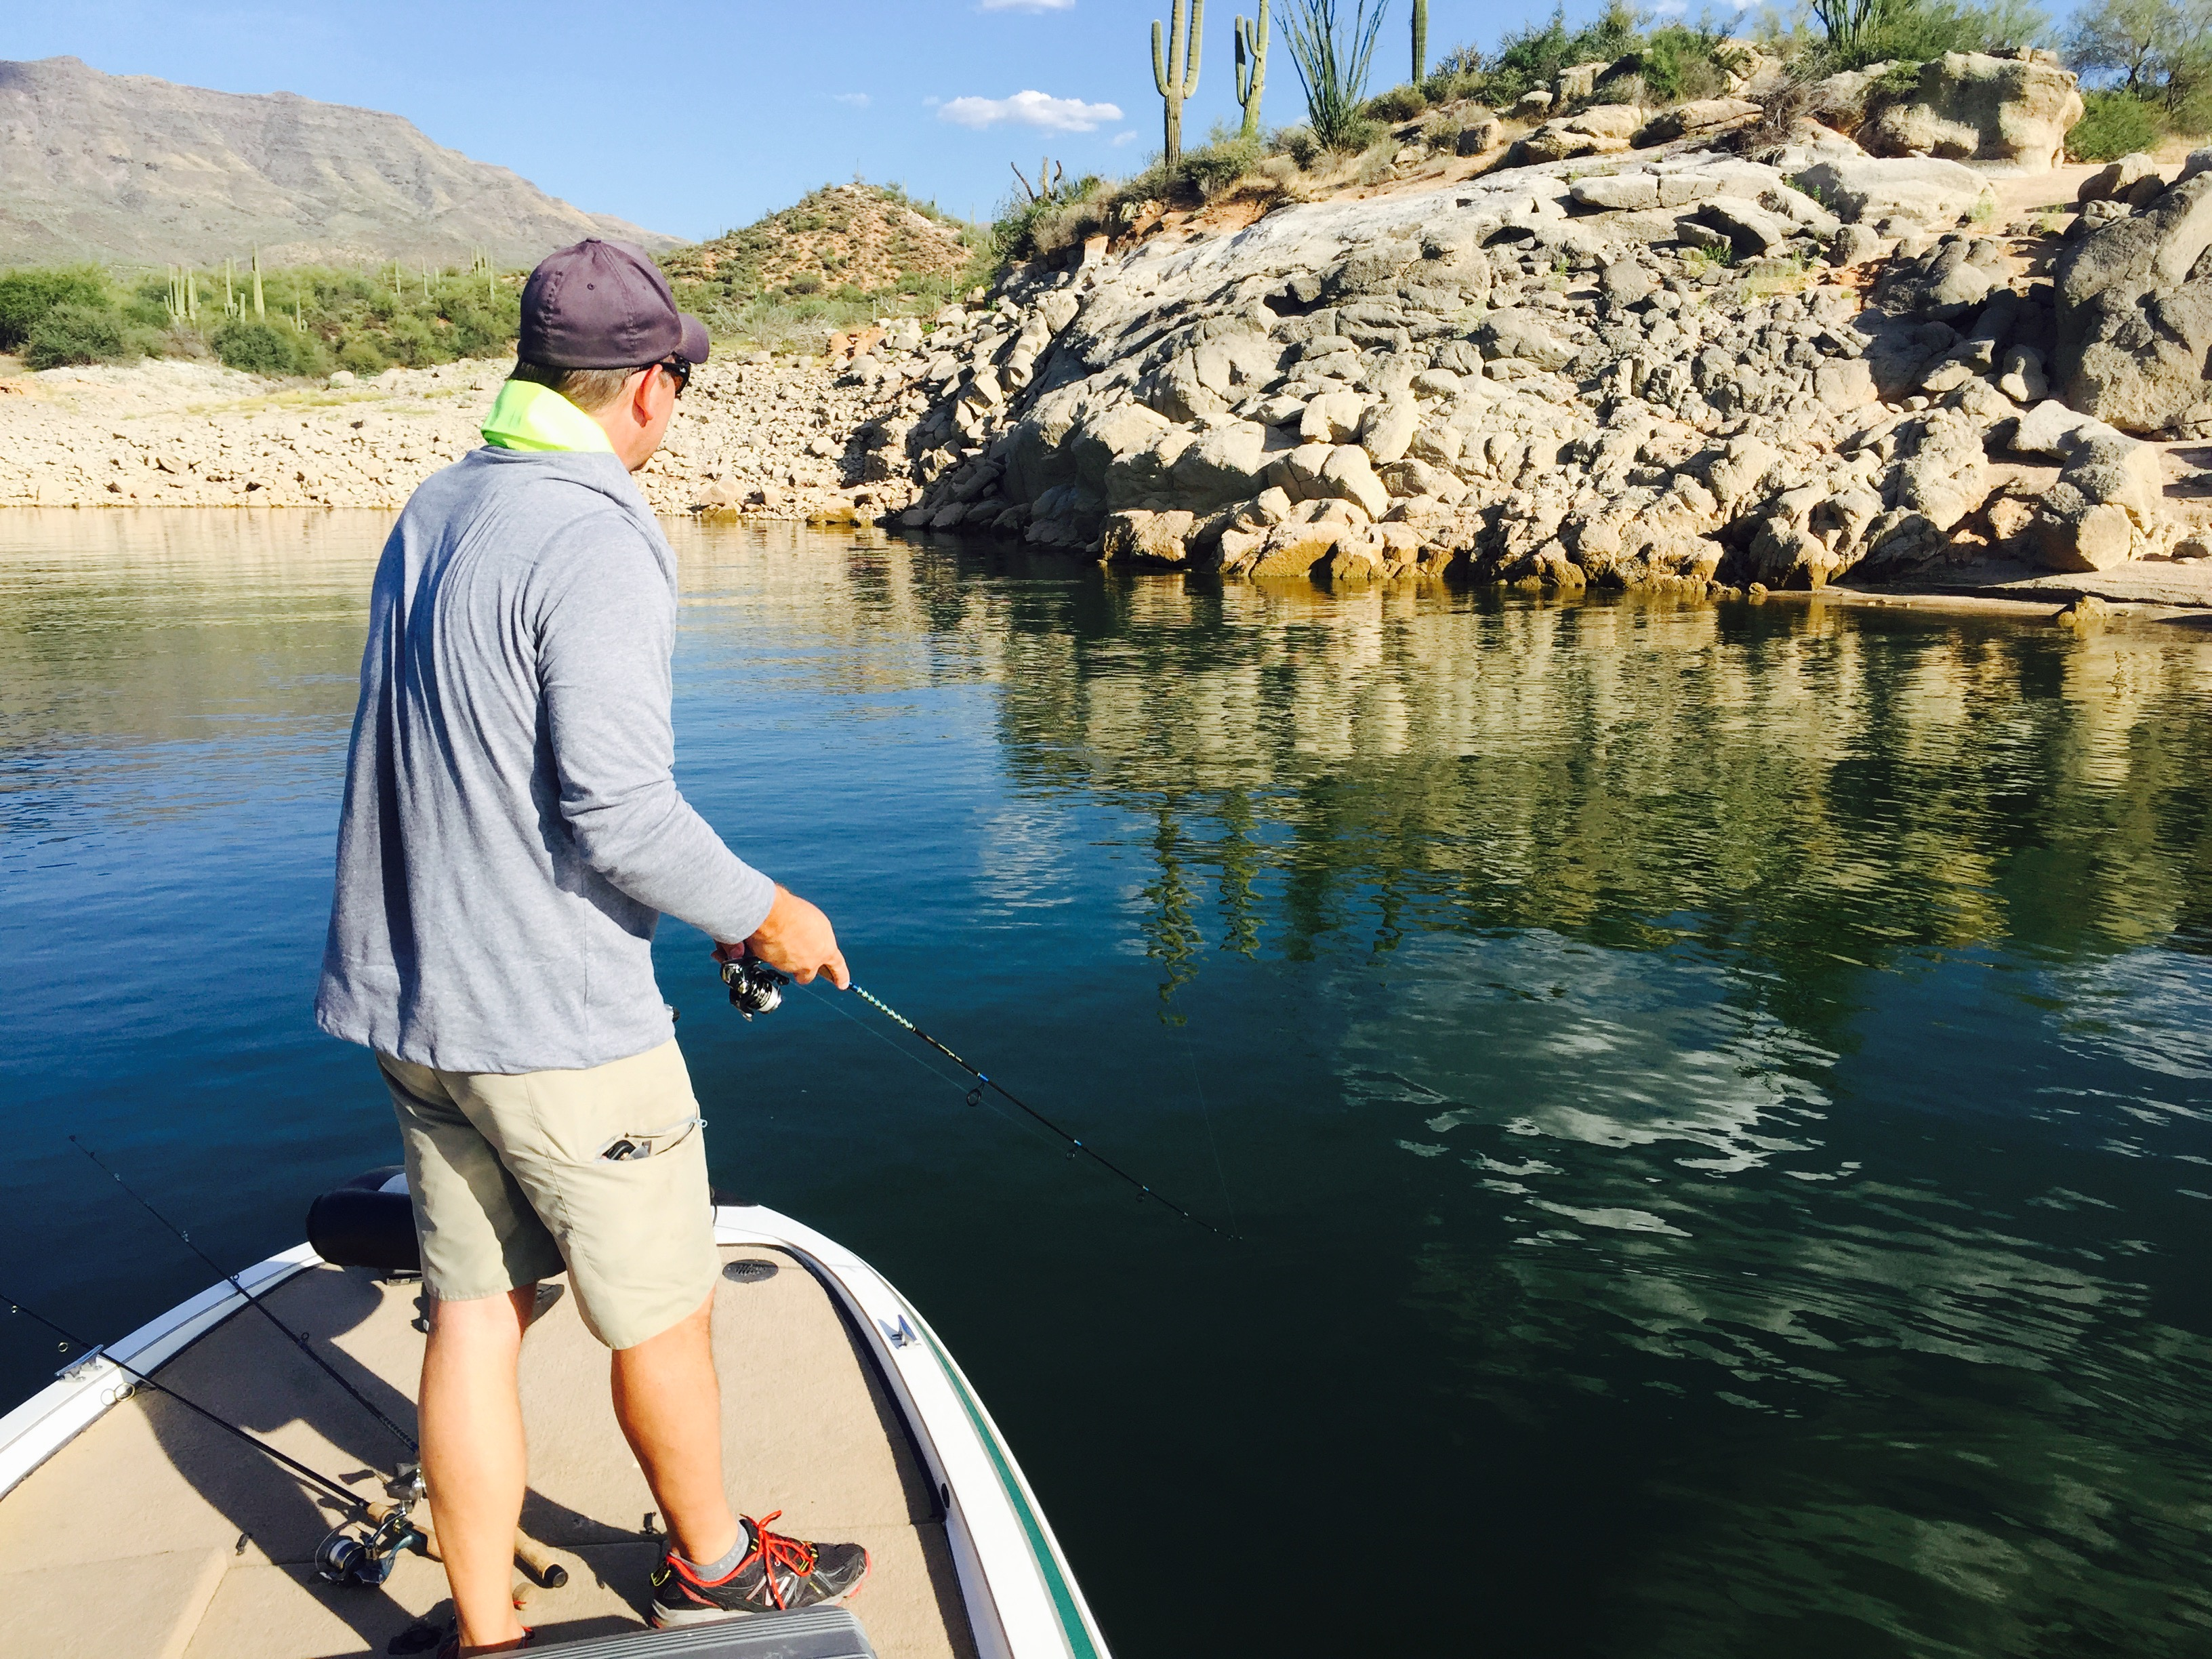 Fishing Report: Central region -- Saguaro bass bite strong, top